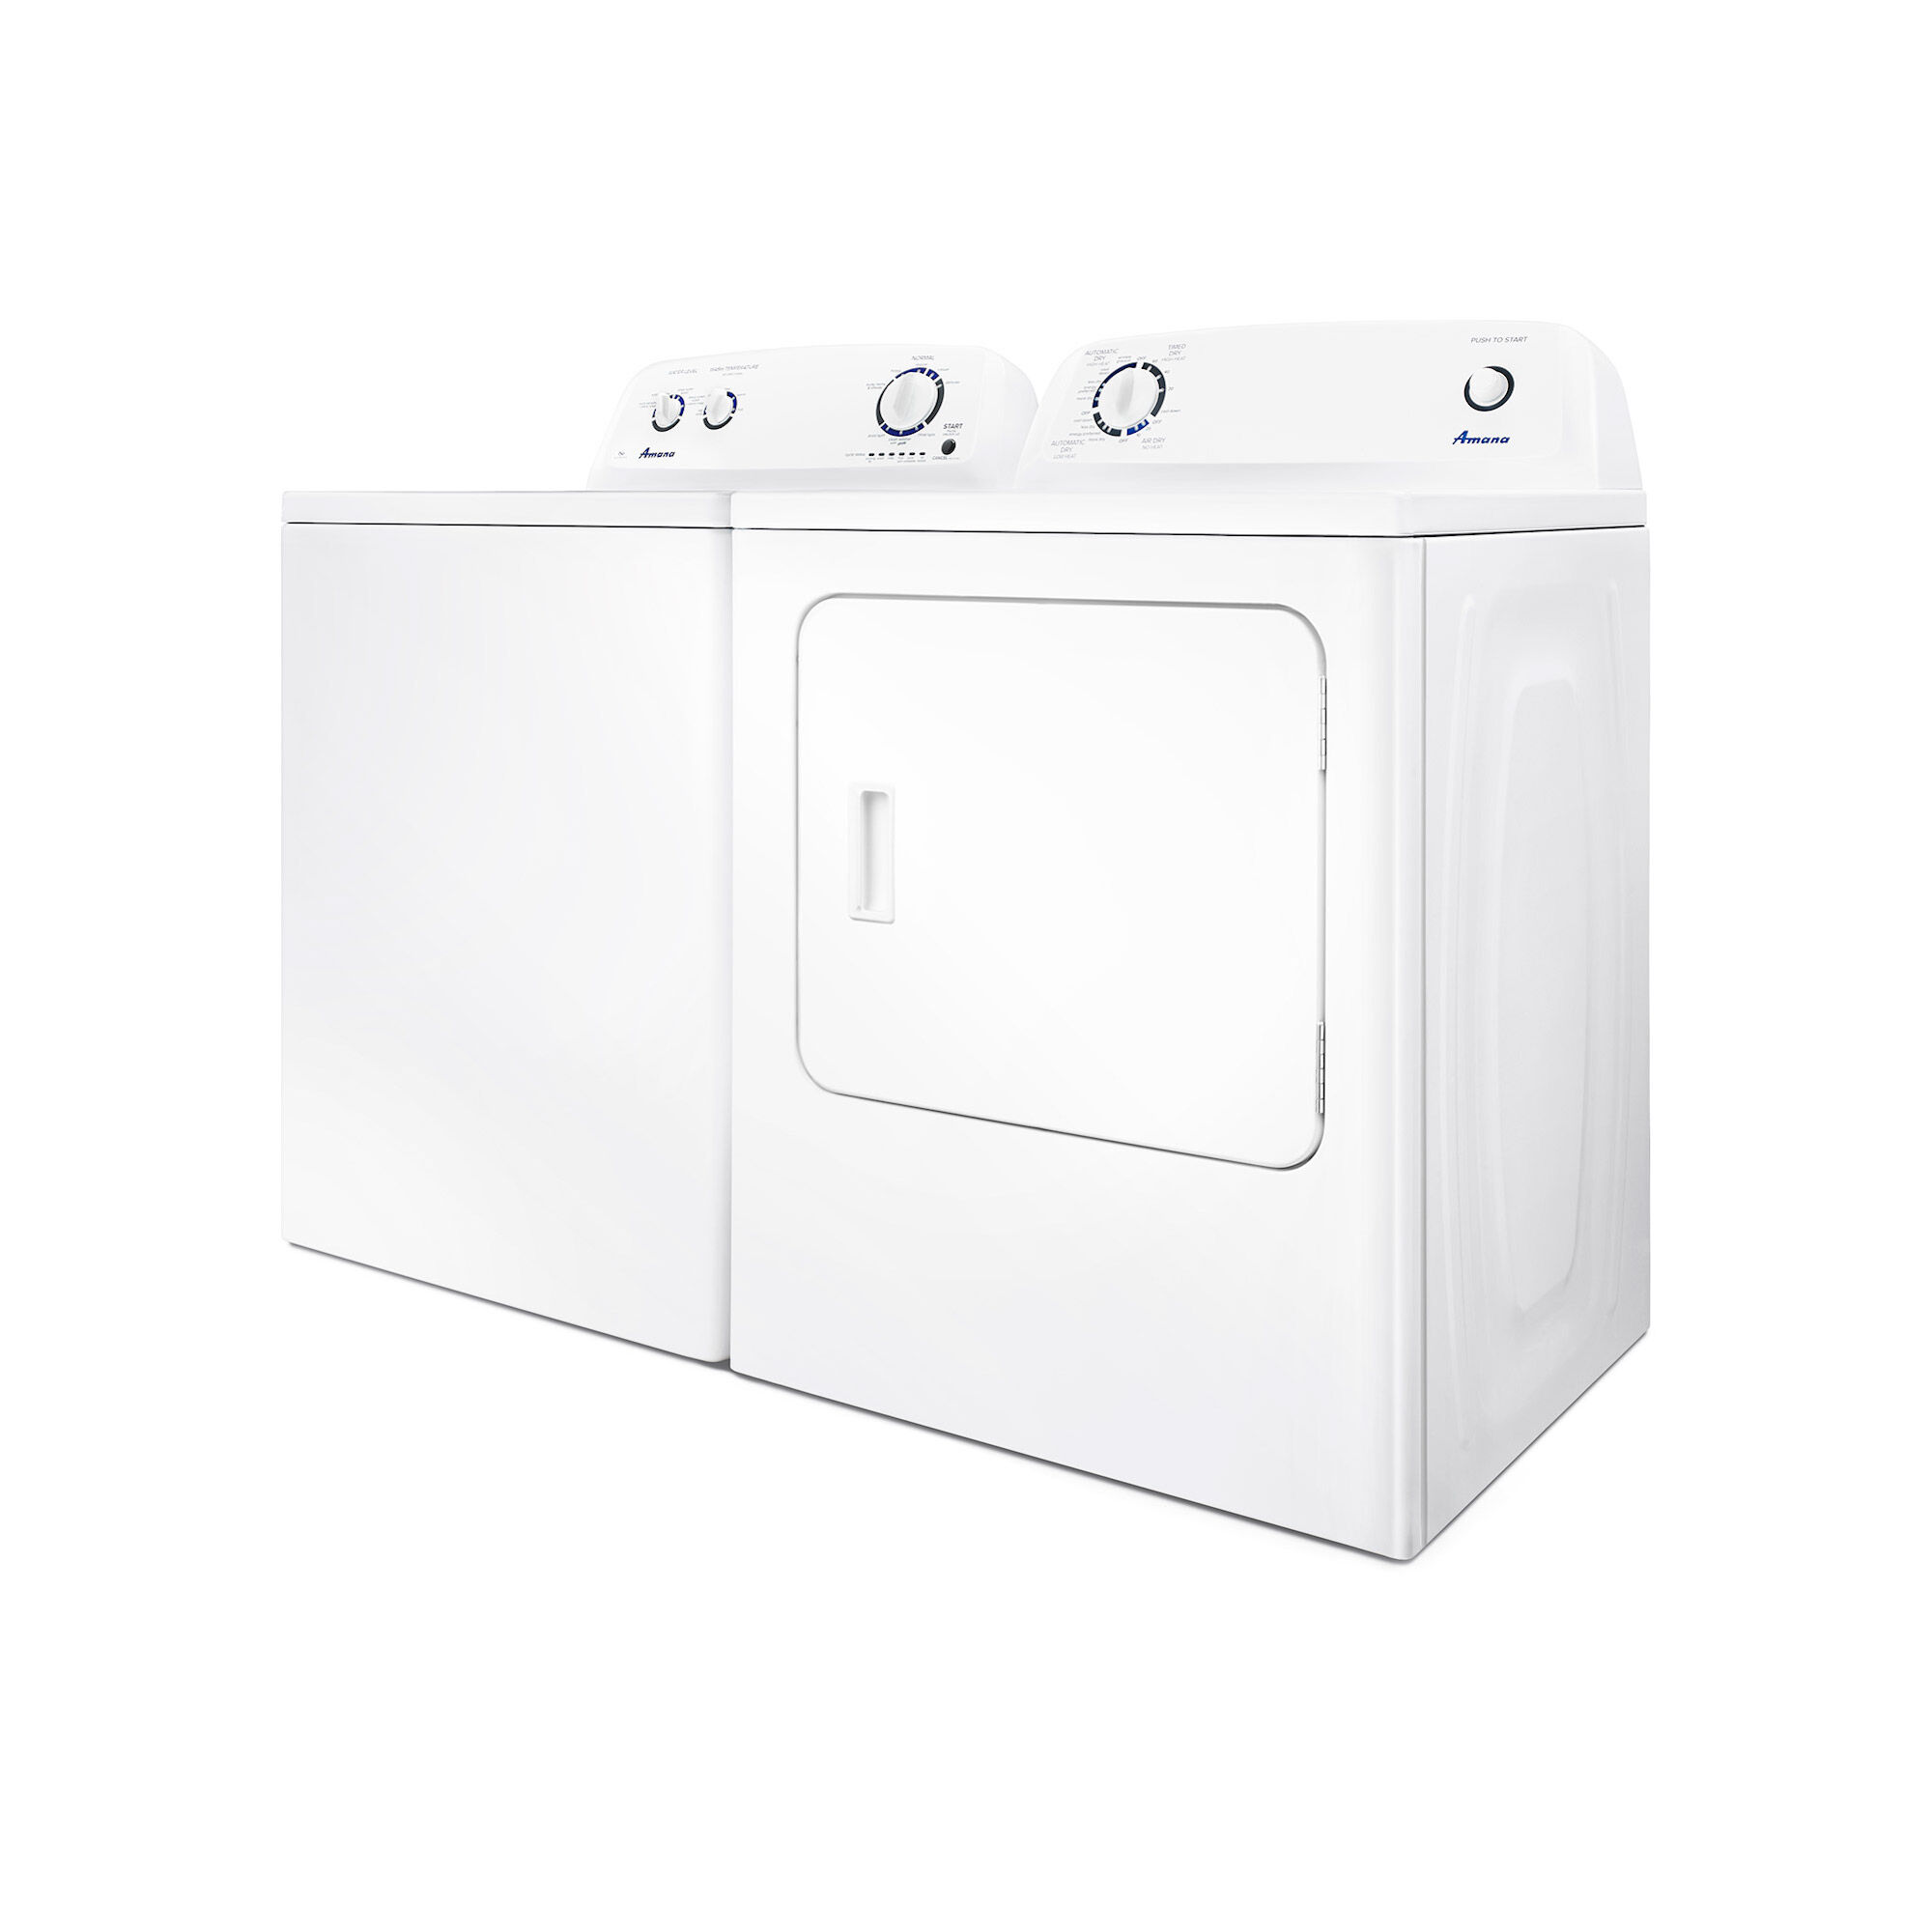 Amana Washers Dryers 35 cu ft Washer 65 cu ft Electric Dryer